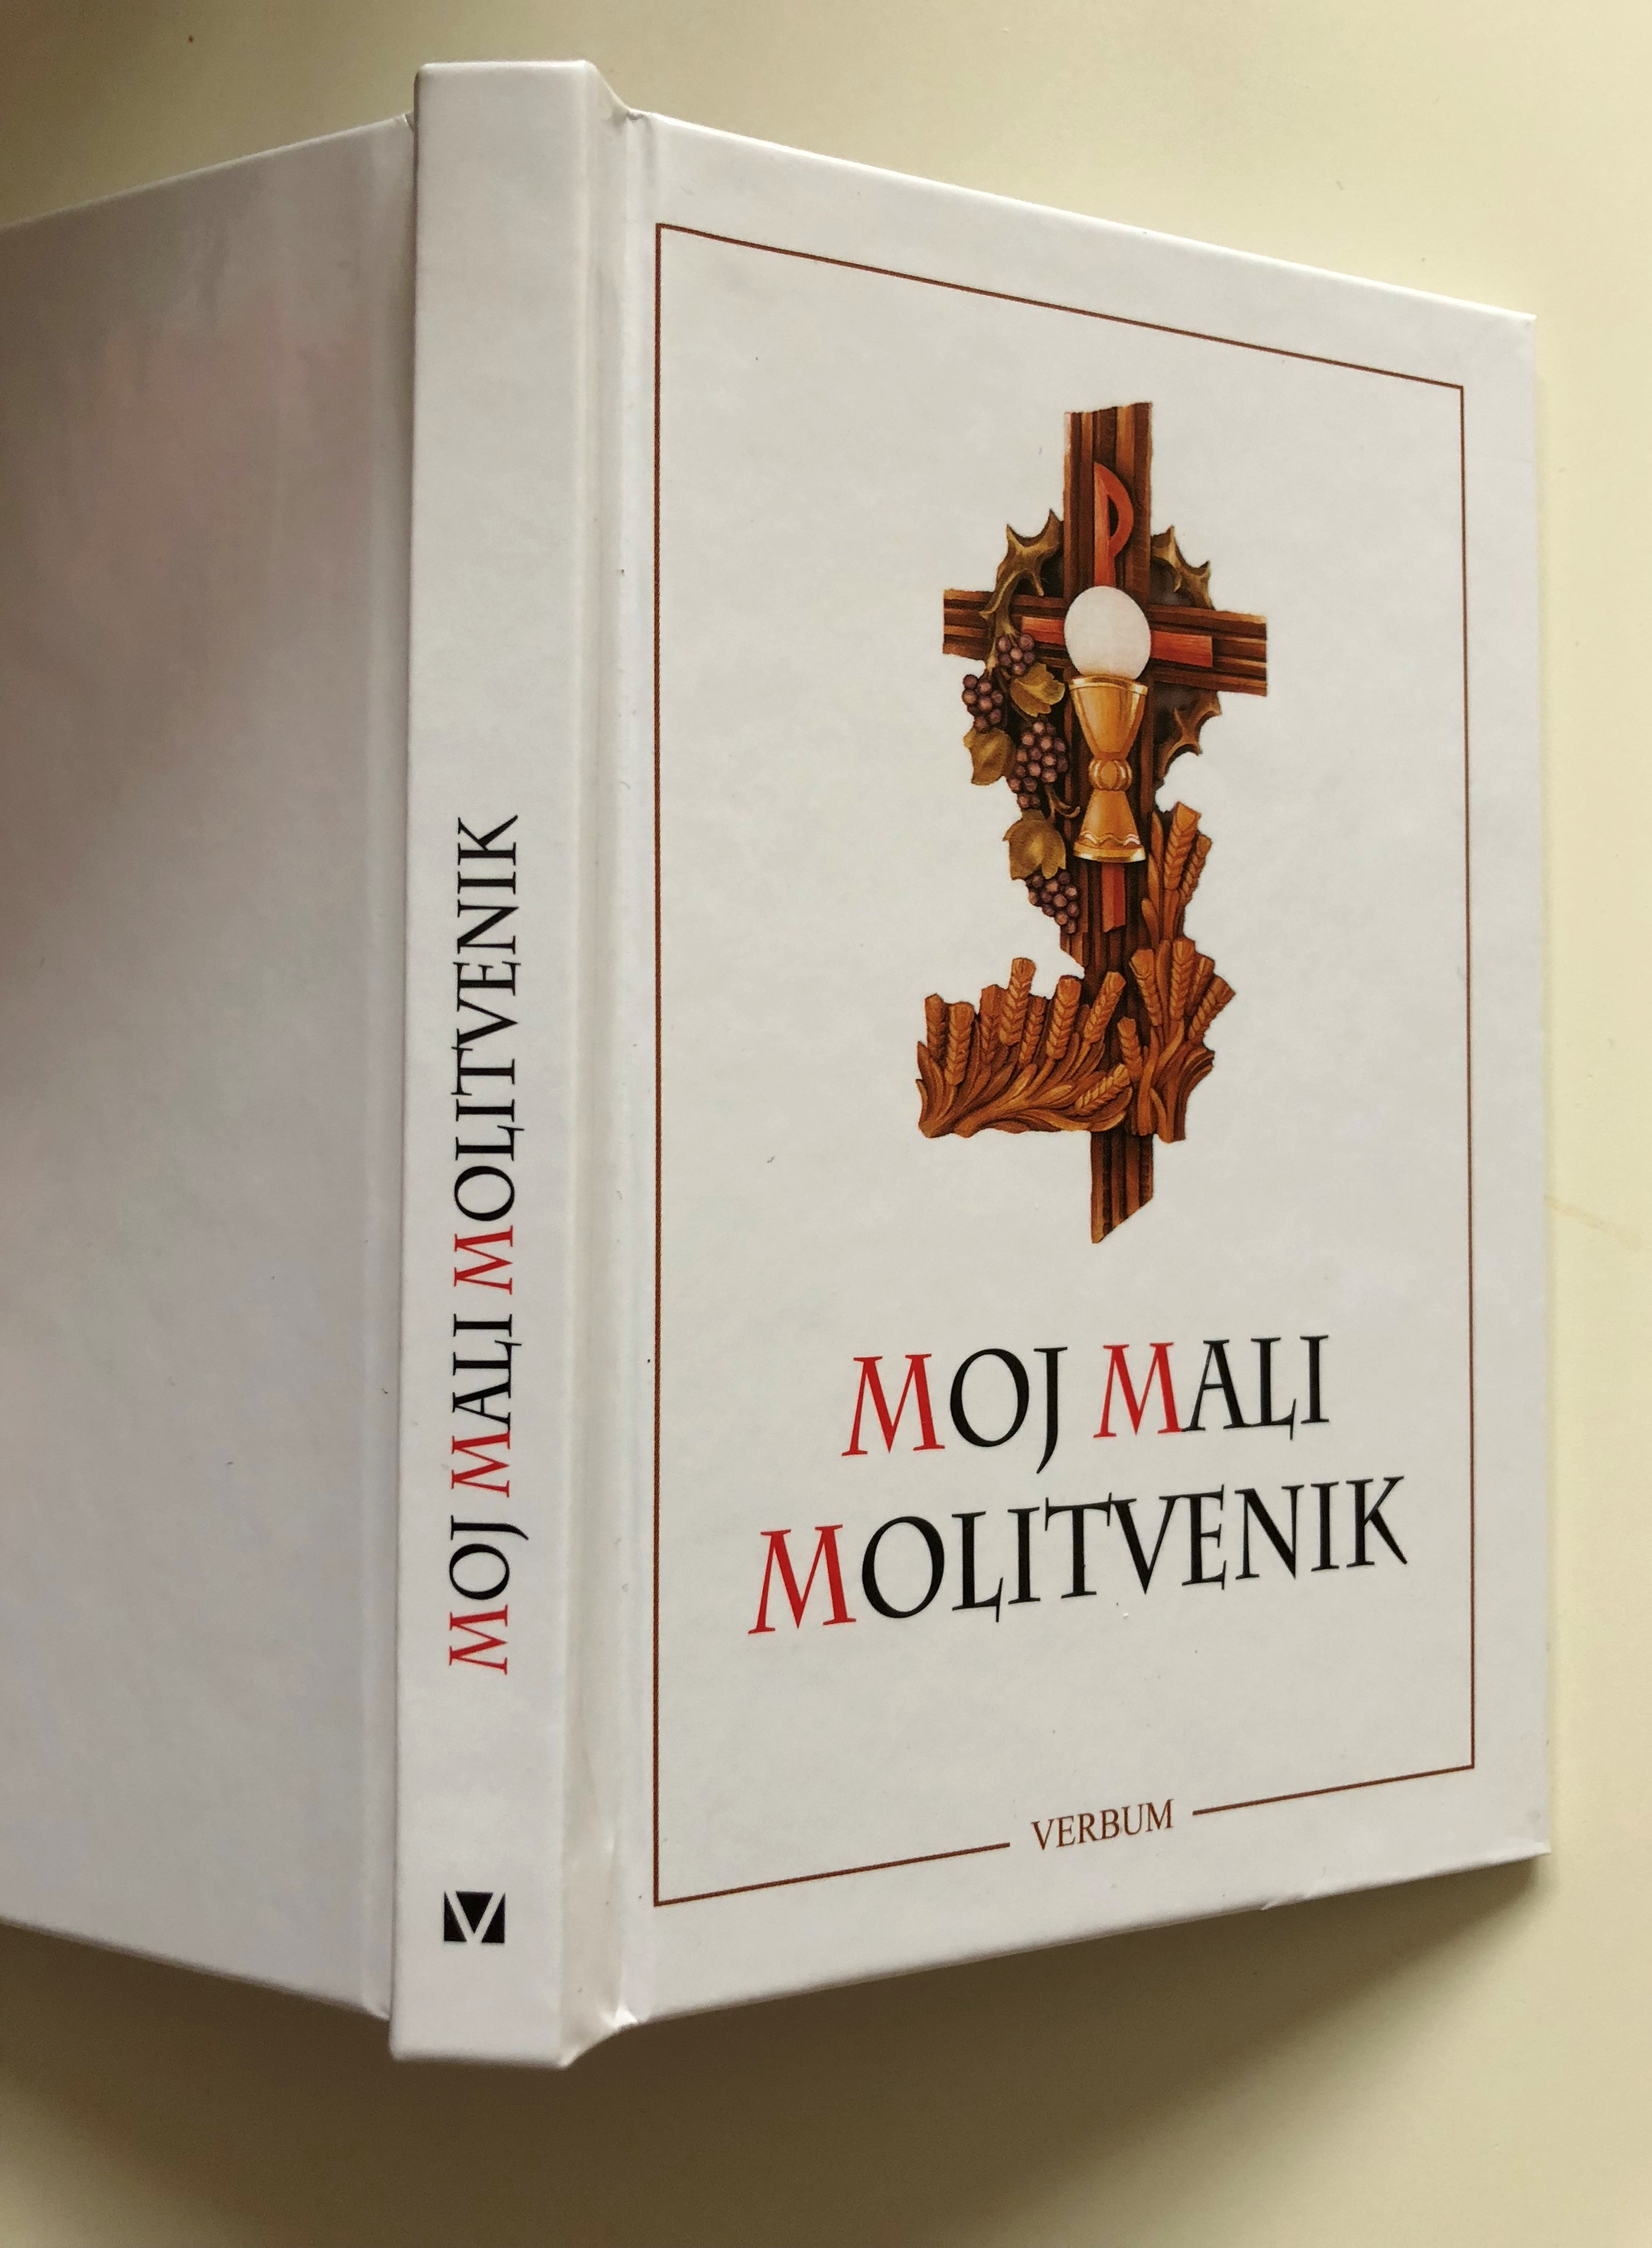 croatian-my-little-prayer-book-11th-edition-2-.jpg